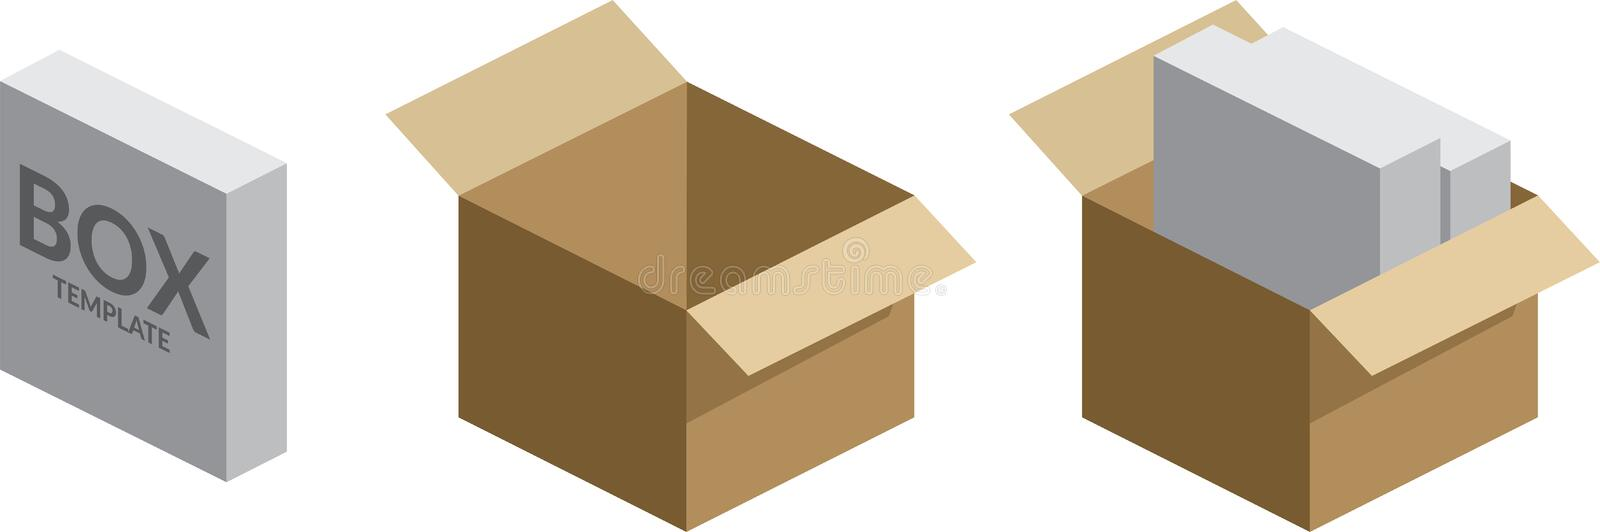 Software Box / packed boxes Vector Illustration. Isometric 3d Boxes with software boxes stock illustration